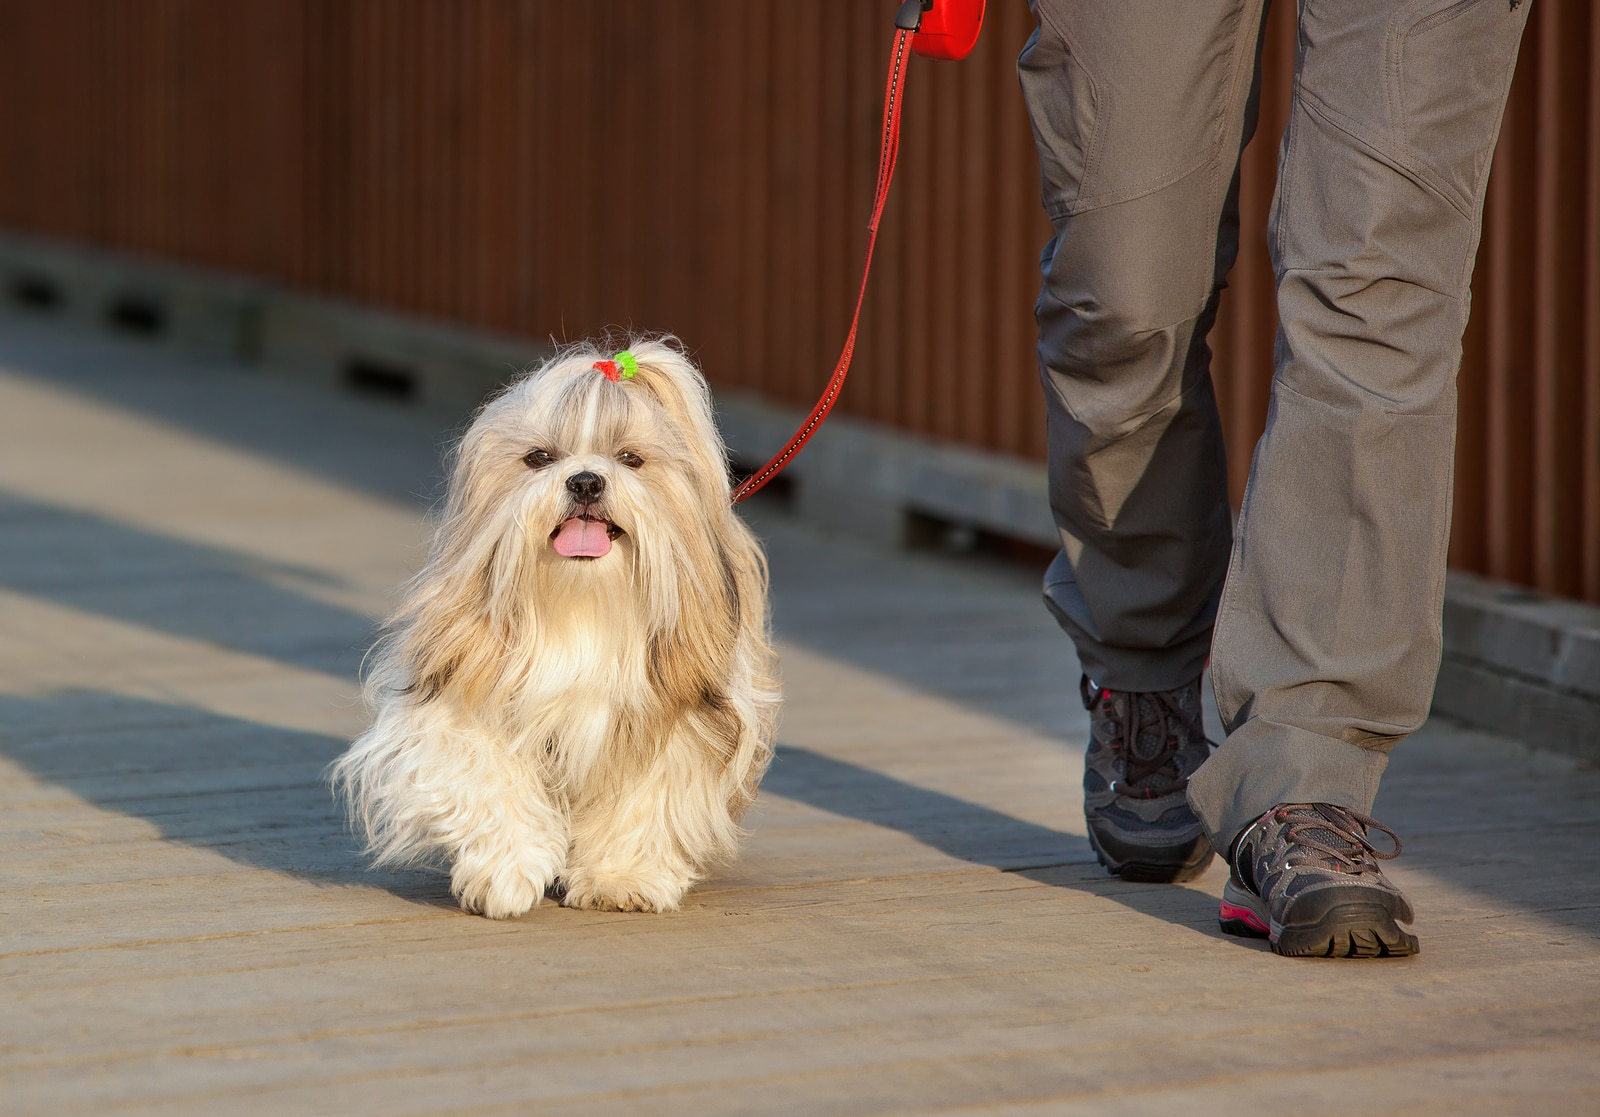 Shih Tzu with bow in hair walks on leash beside human.